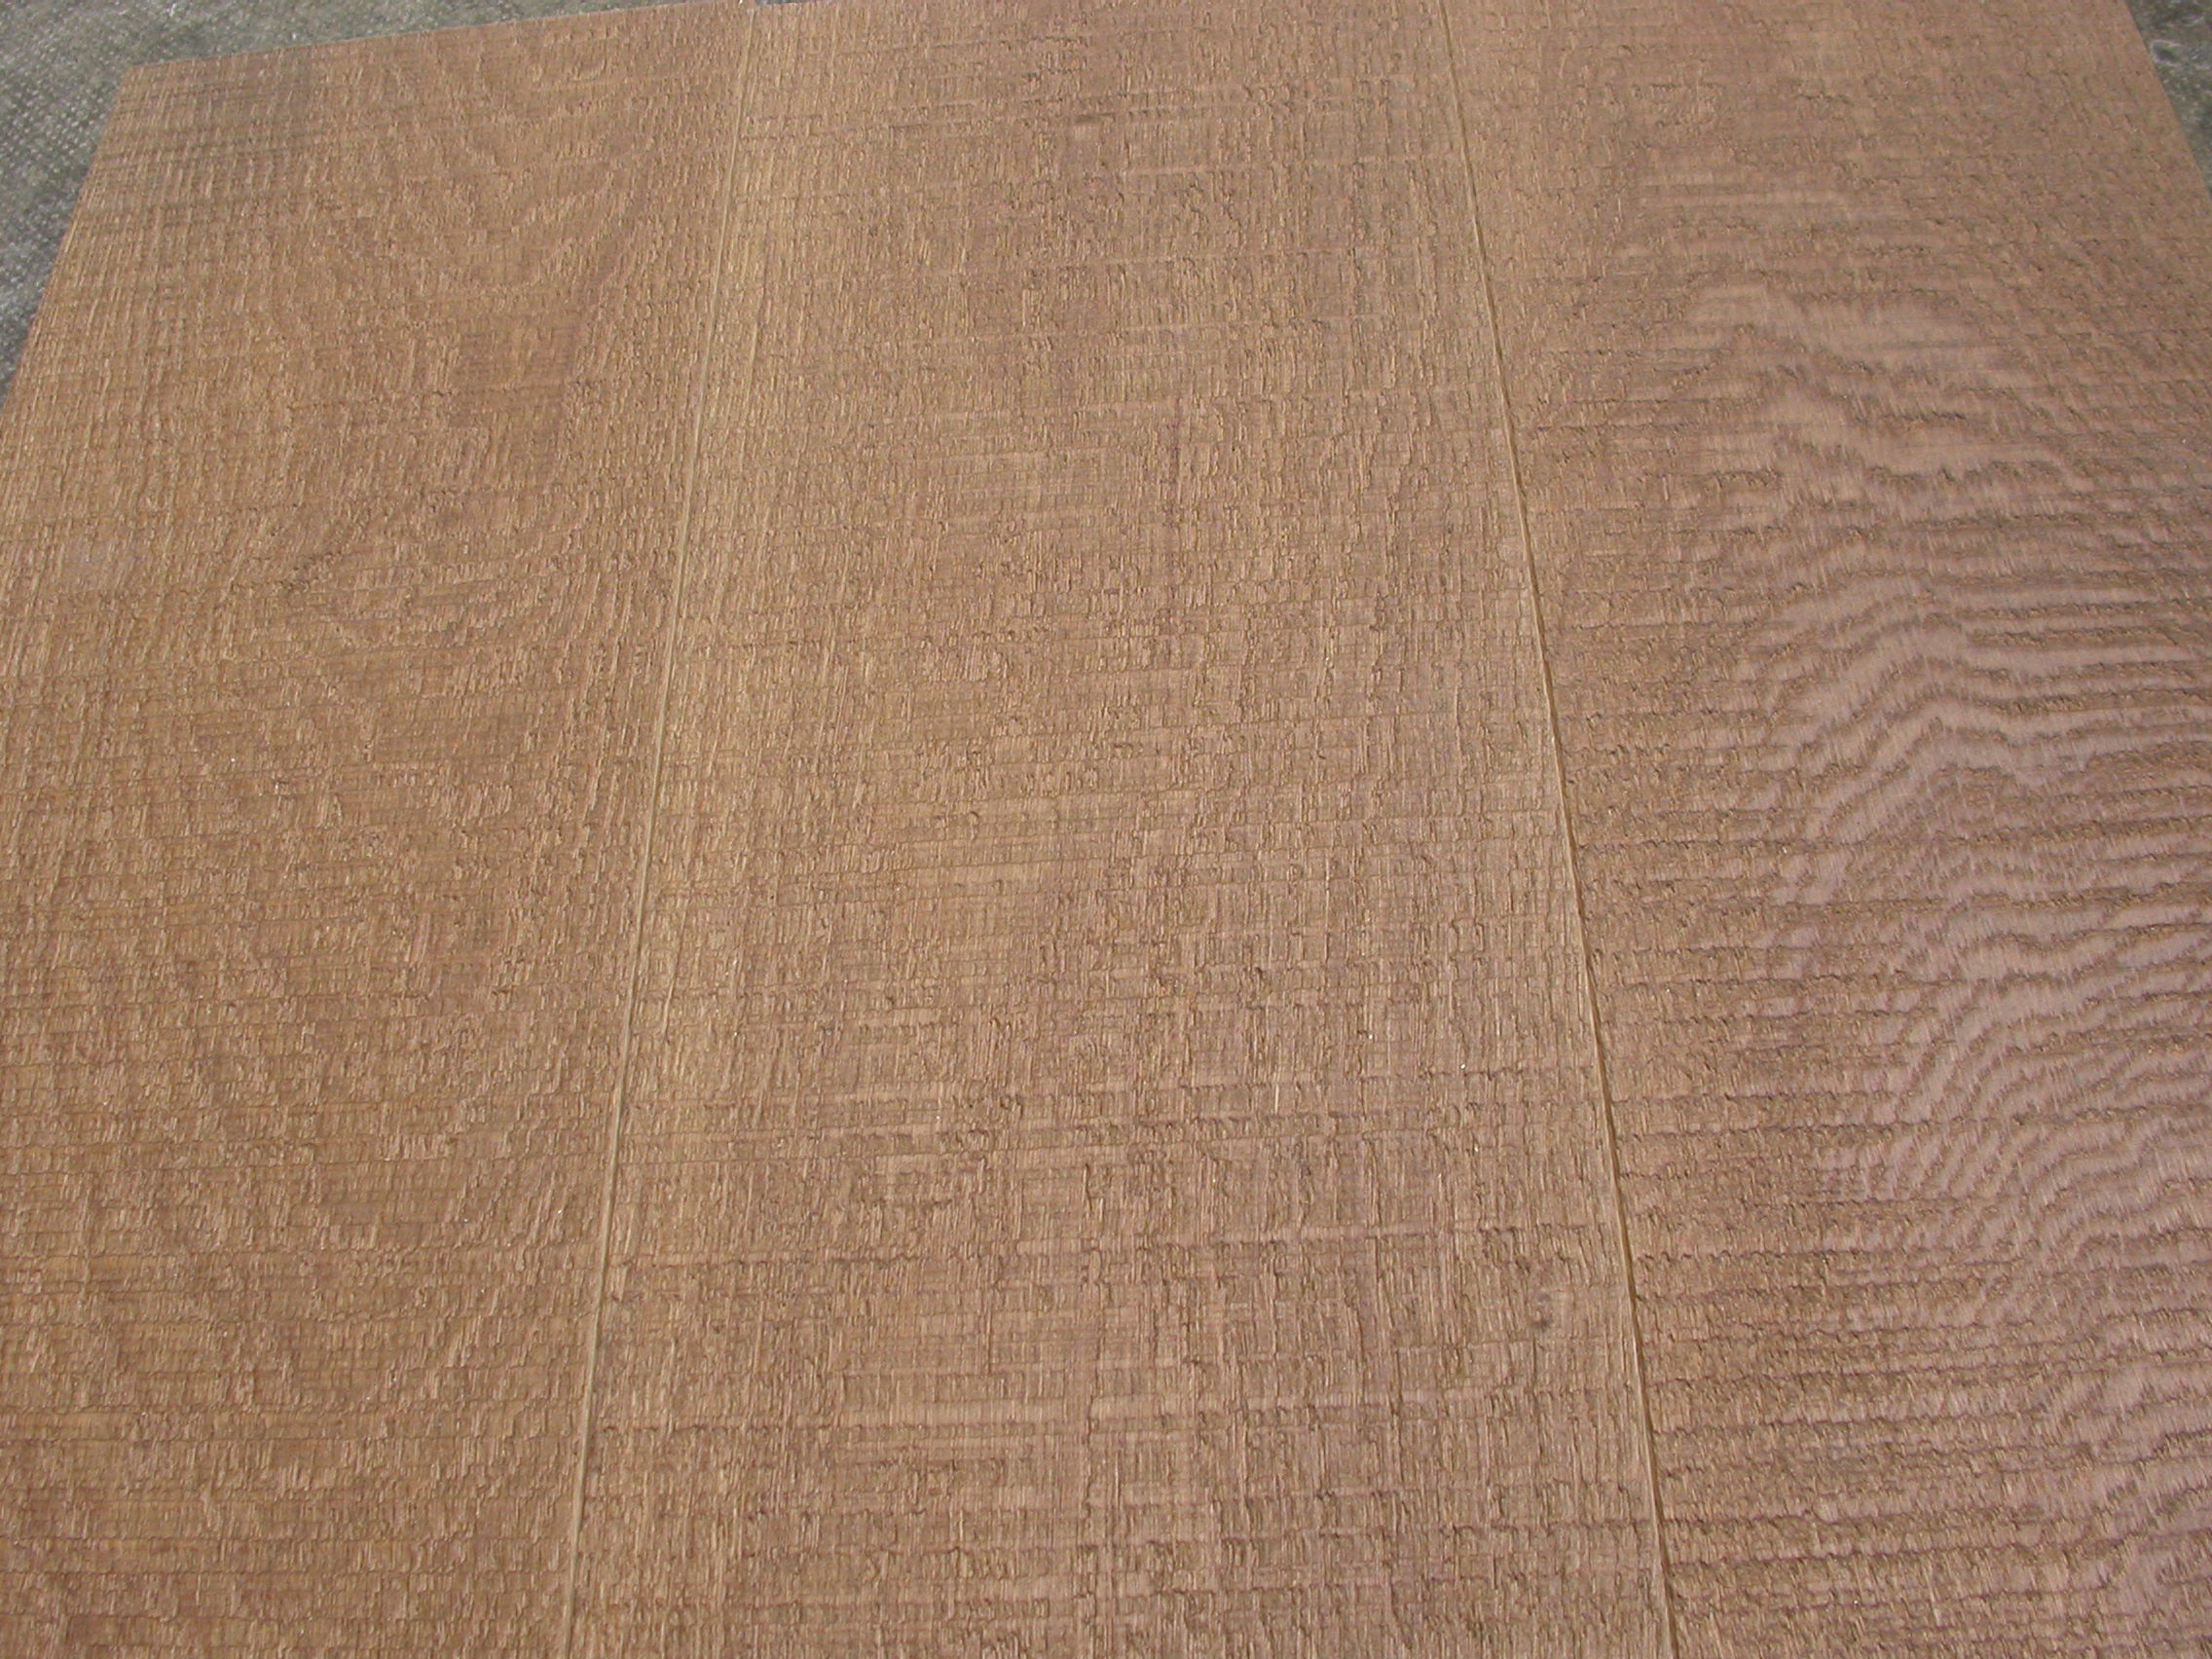 SAW CUT SMOKED BRUSHED UV OIL